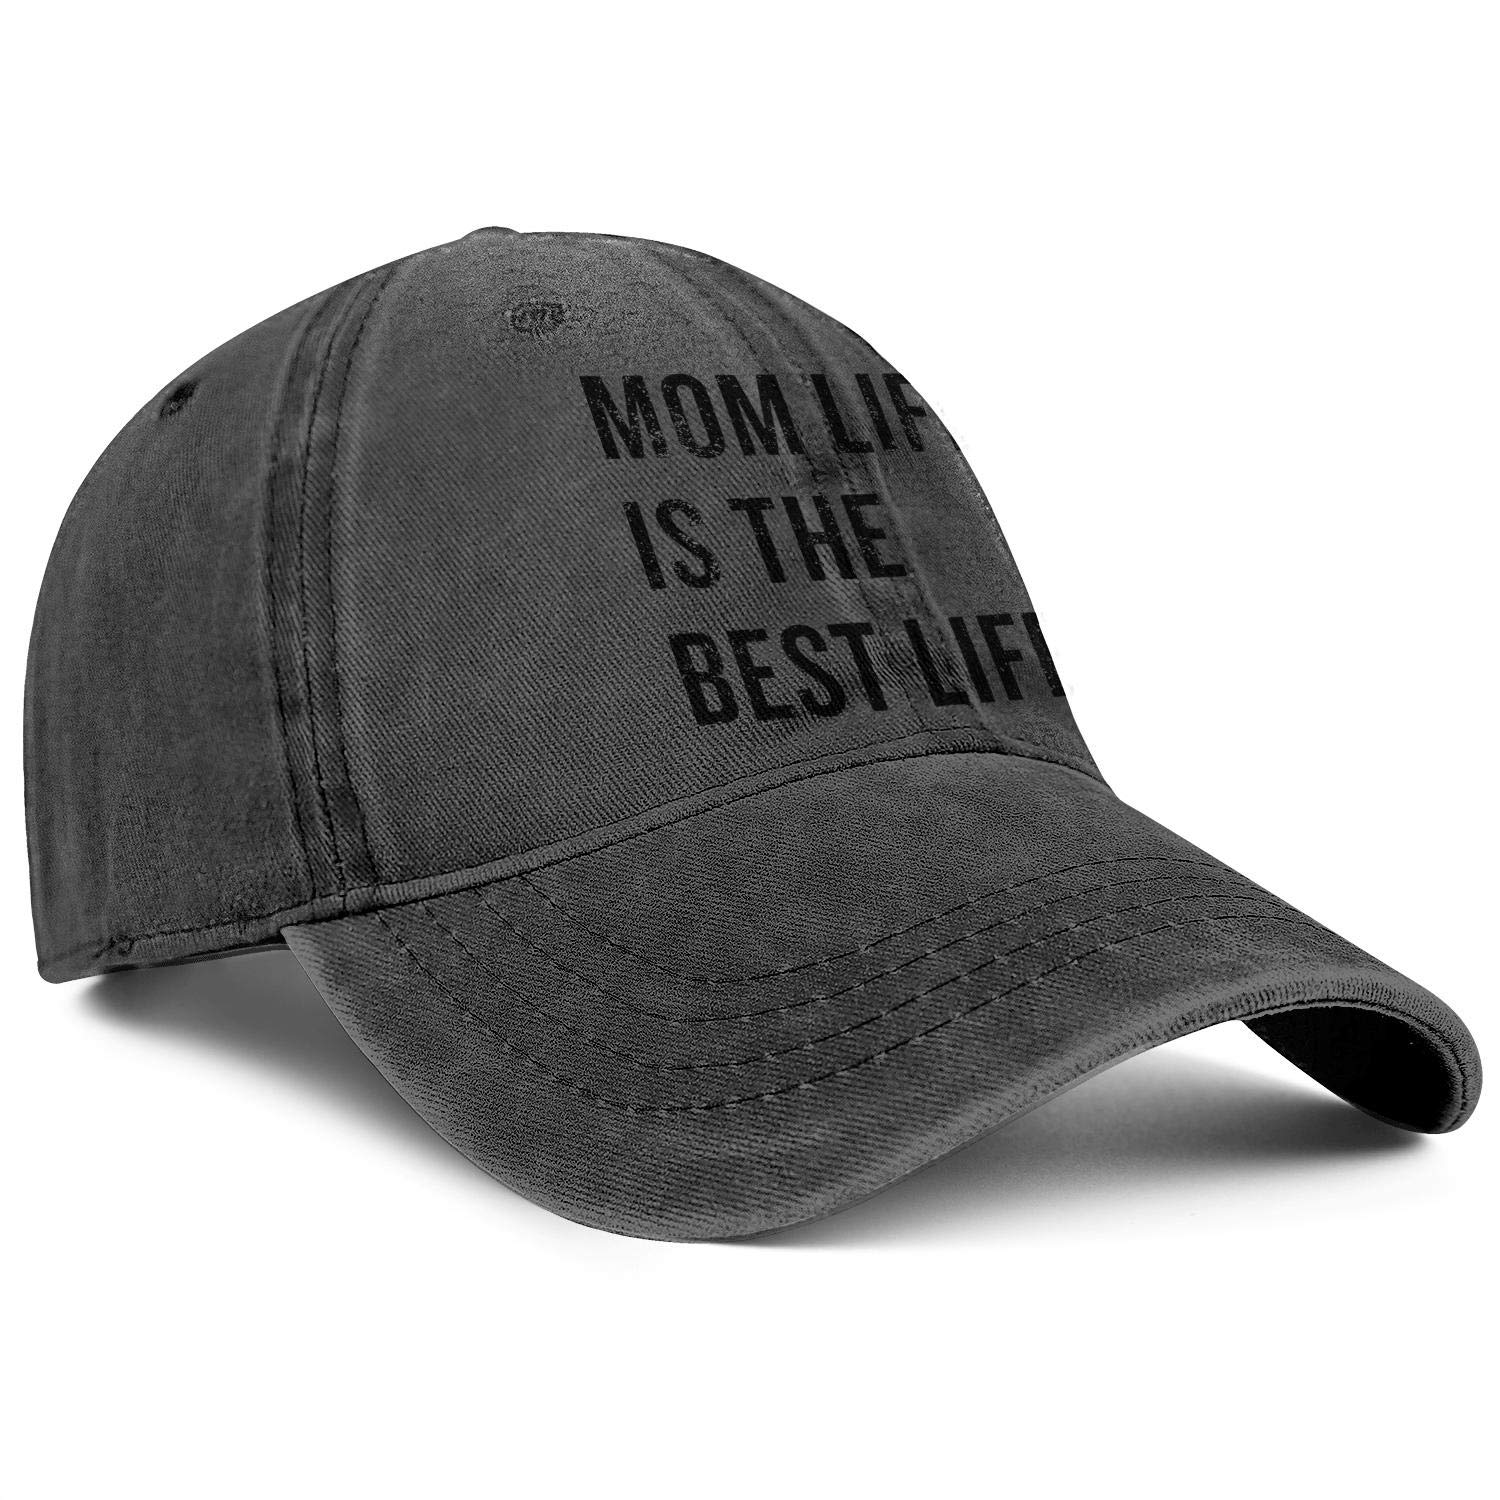 TopCrazy Mom Life is The Best Life Denim Sports Hats Men//Women Style Cowboy Trucker Cap